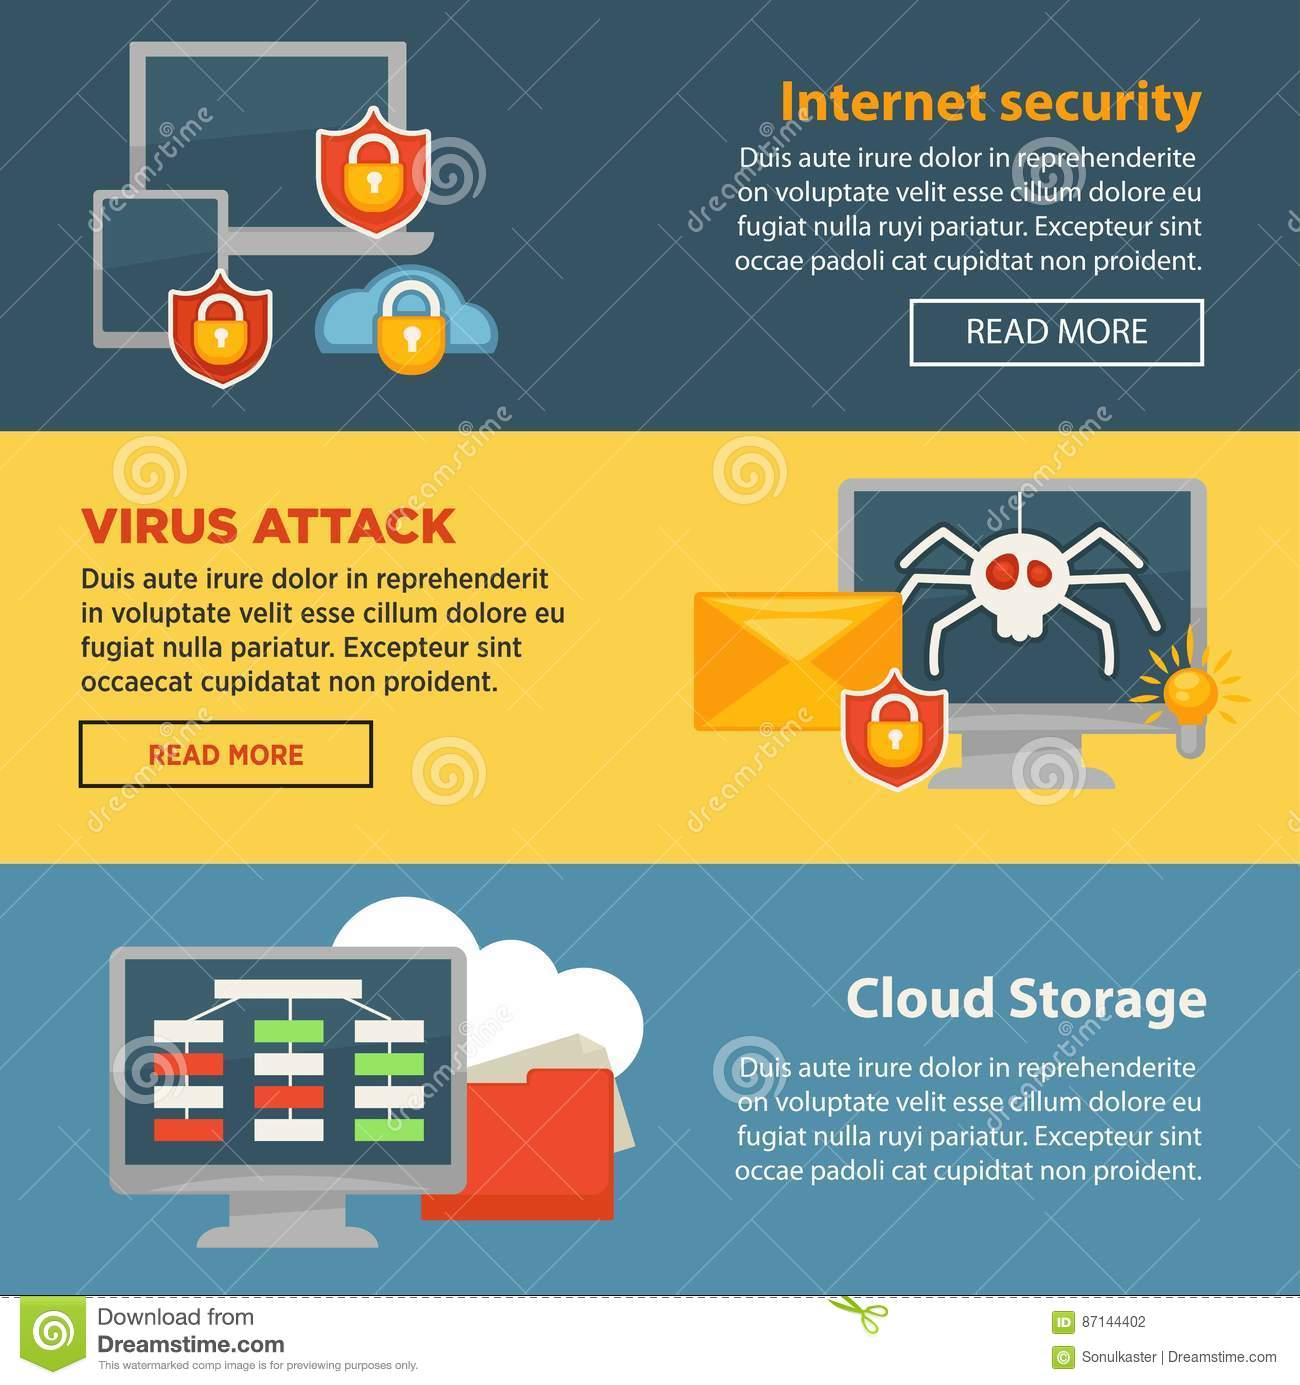 Viral Times Web: Internet Security And Cloud Storage Protection Vector